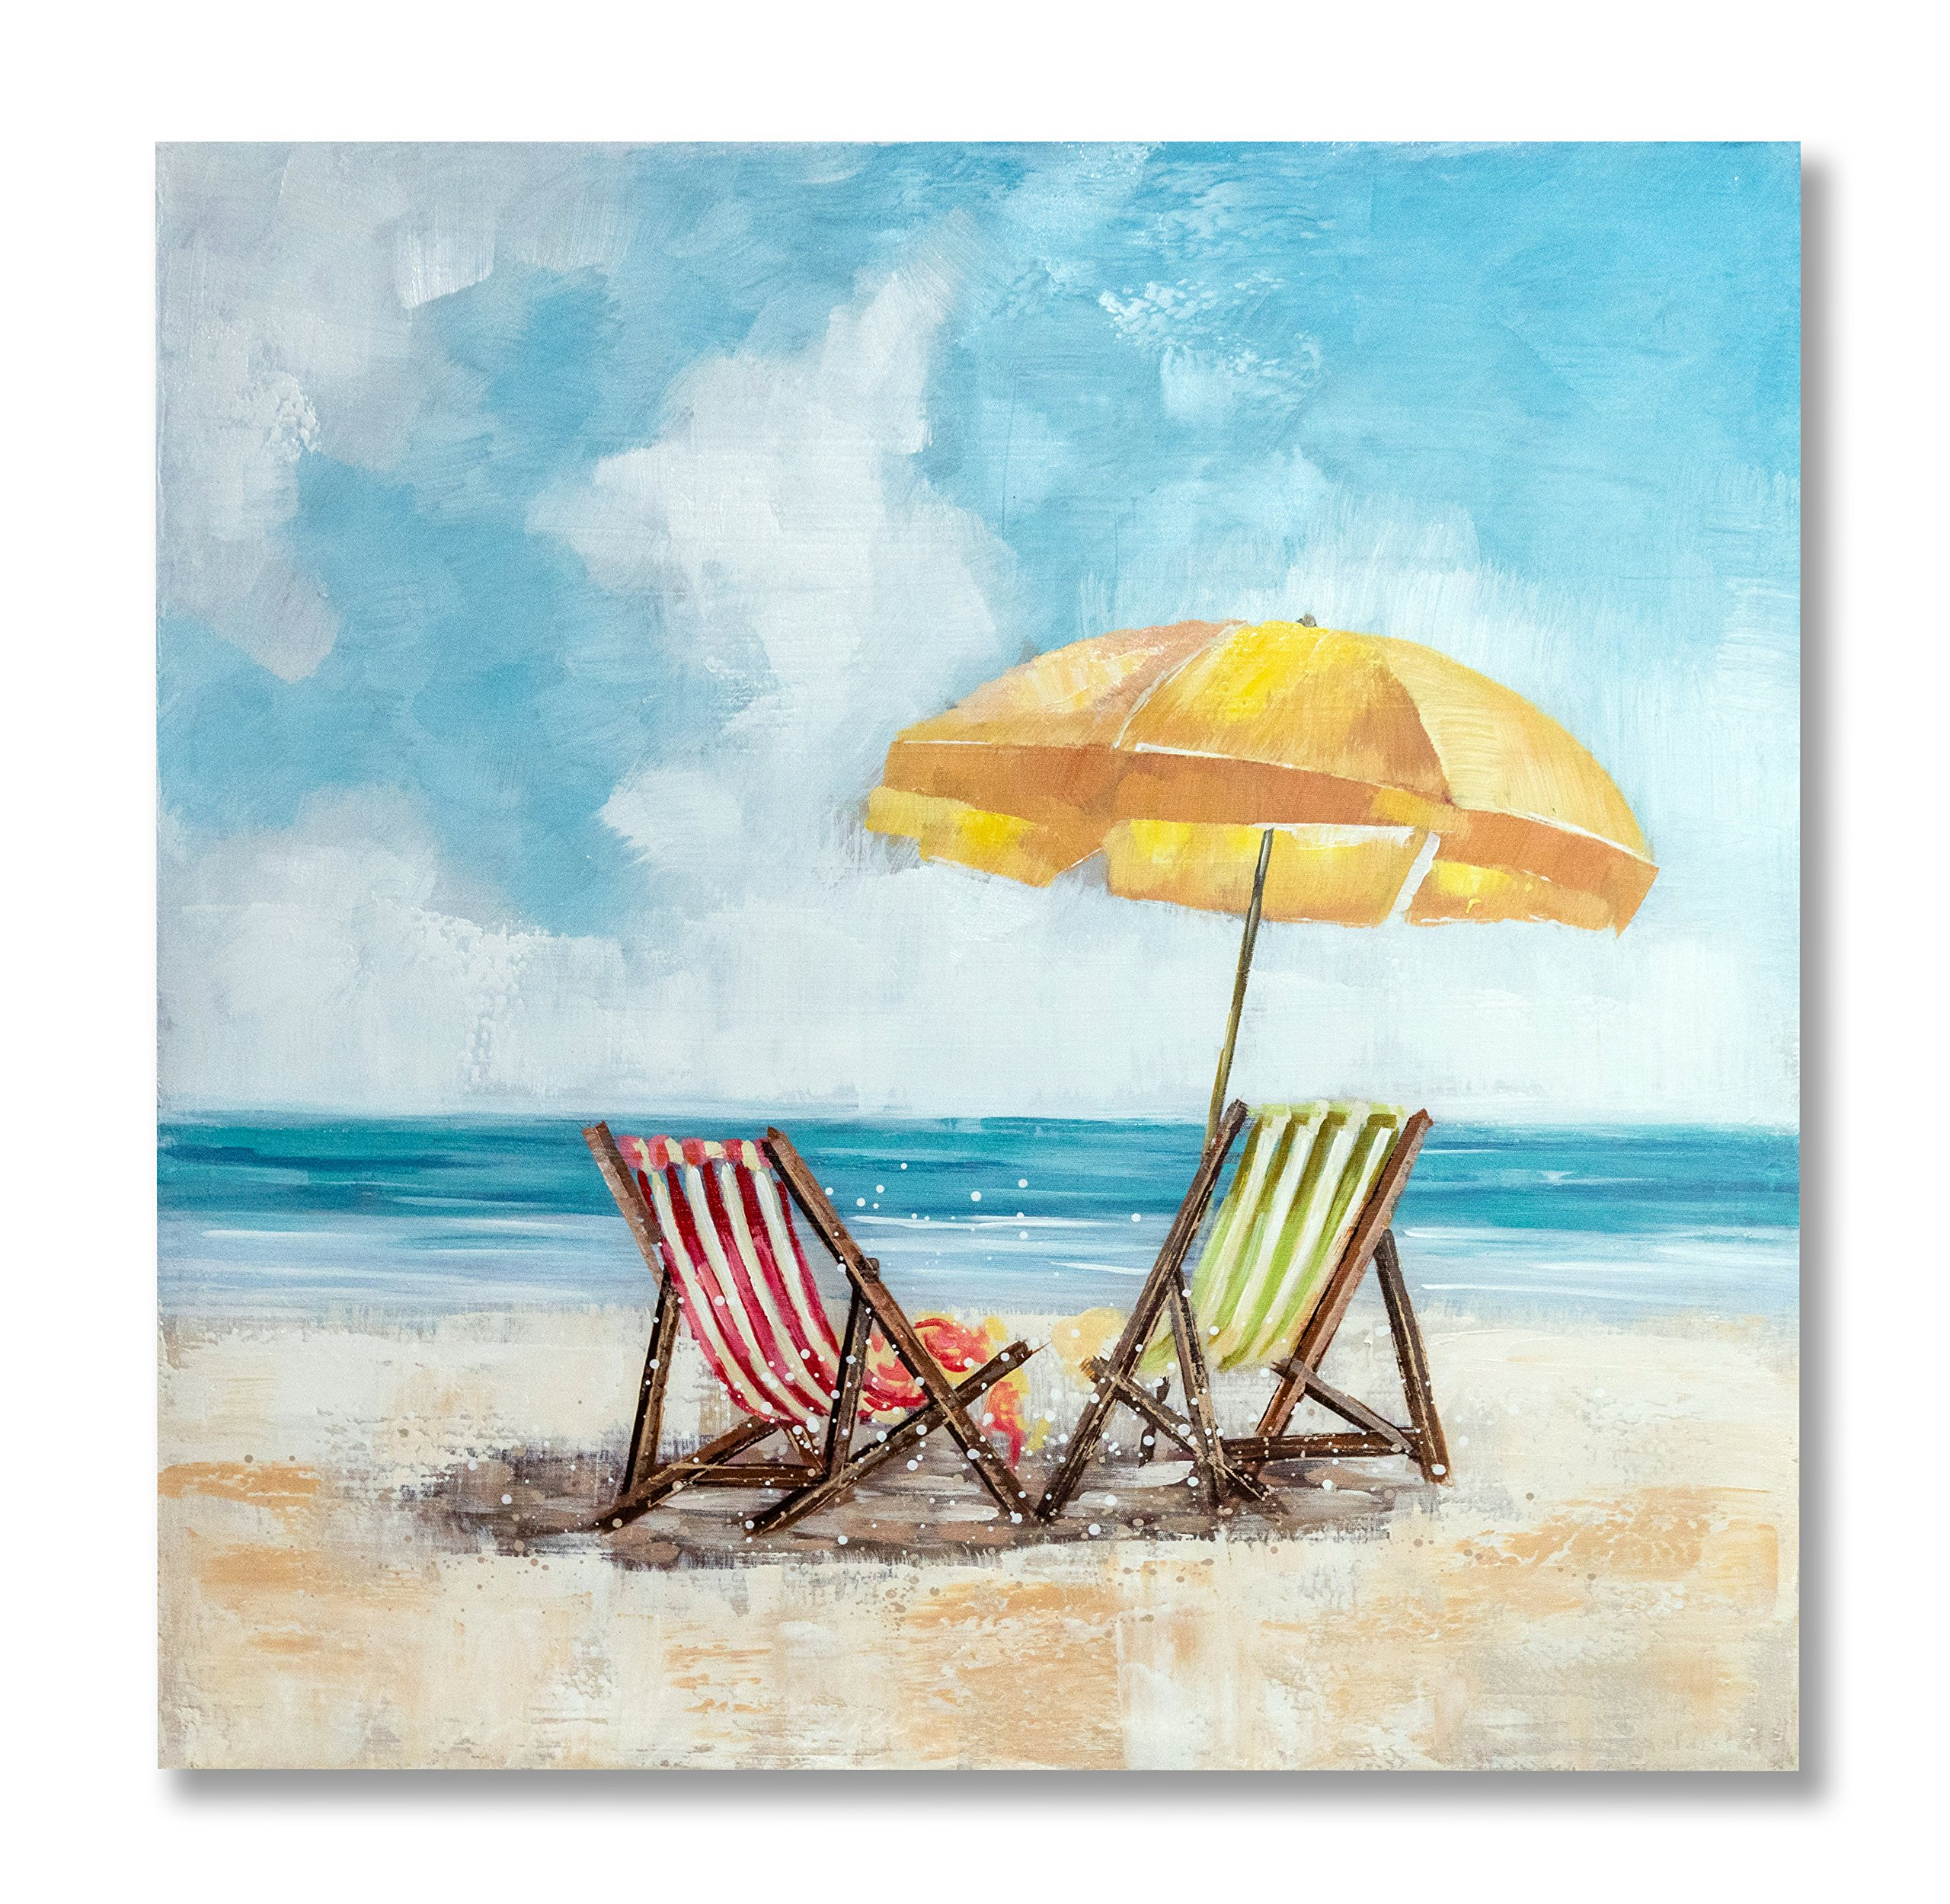 """In Liu Of   Modern Oil Painting on Canvas """"Treasured Views"""" (Beach Chairs and Umbrella) Stylized Fine Acrylic, Nature Wall Art   Contemporary Romantic Design   Easy-to-Hand Wood Frame   32'' x 32''"""